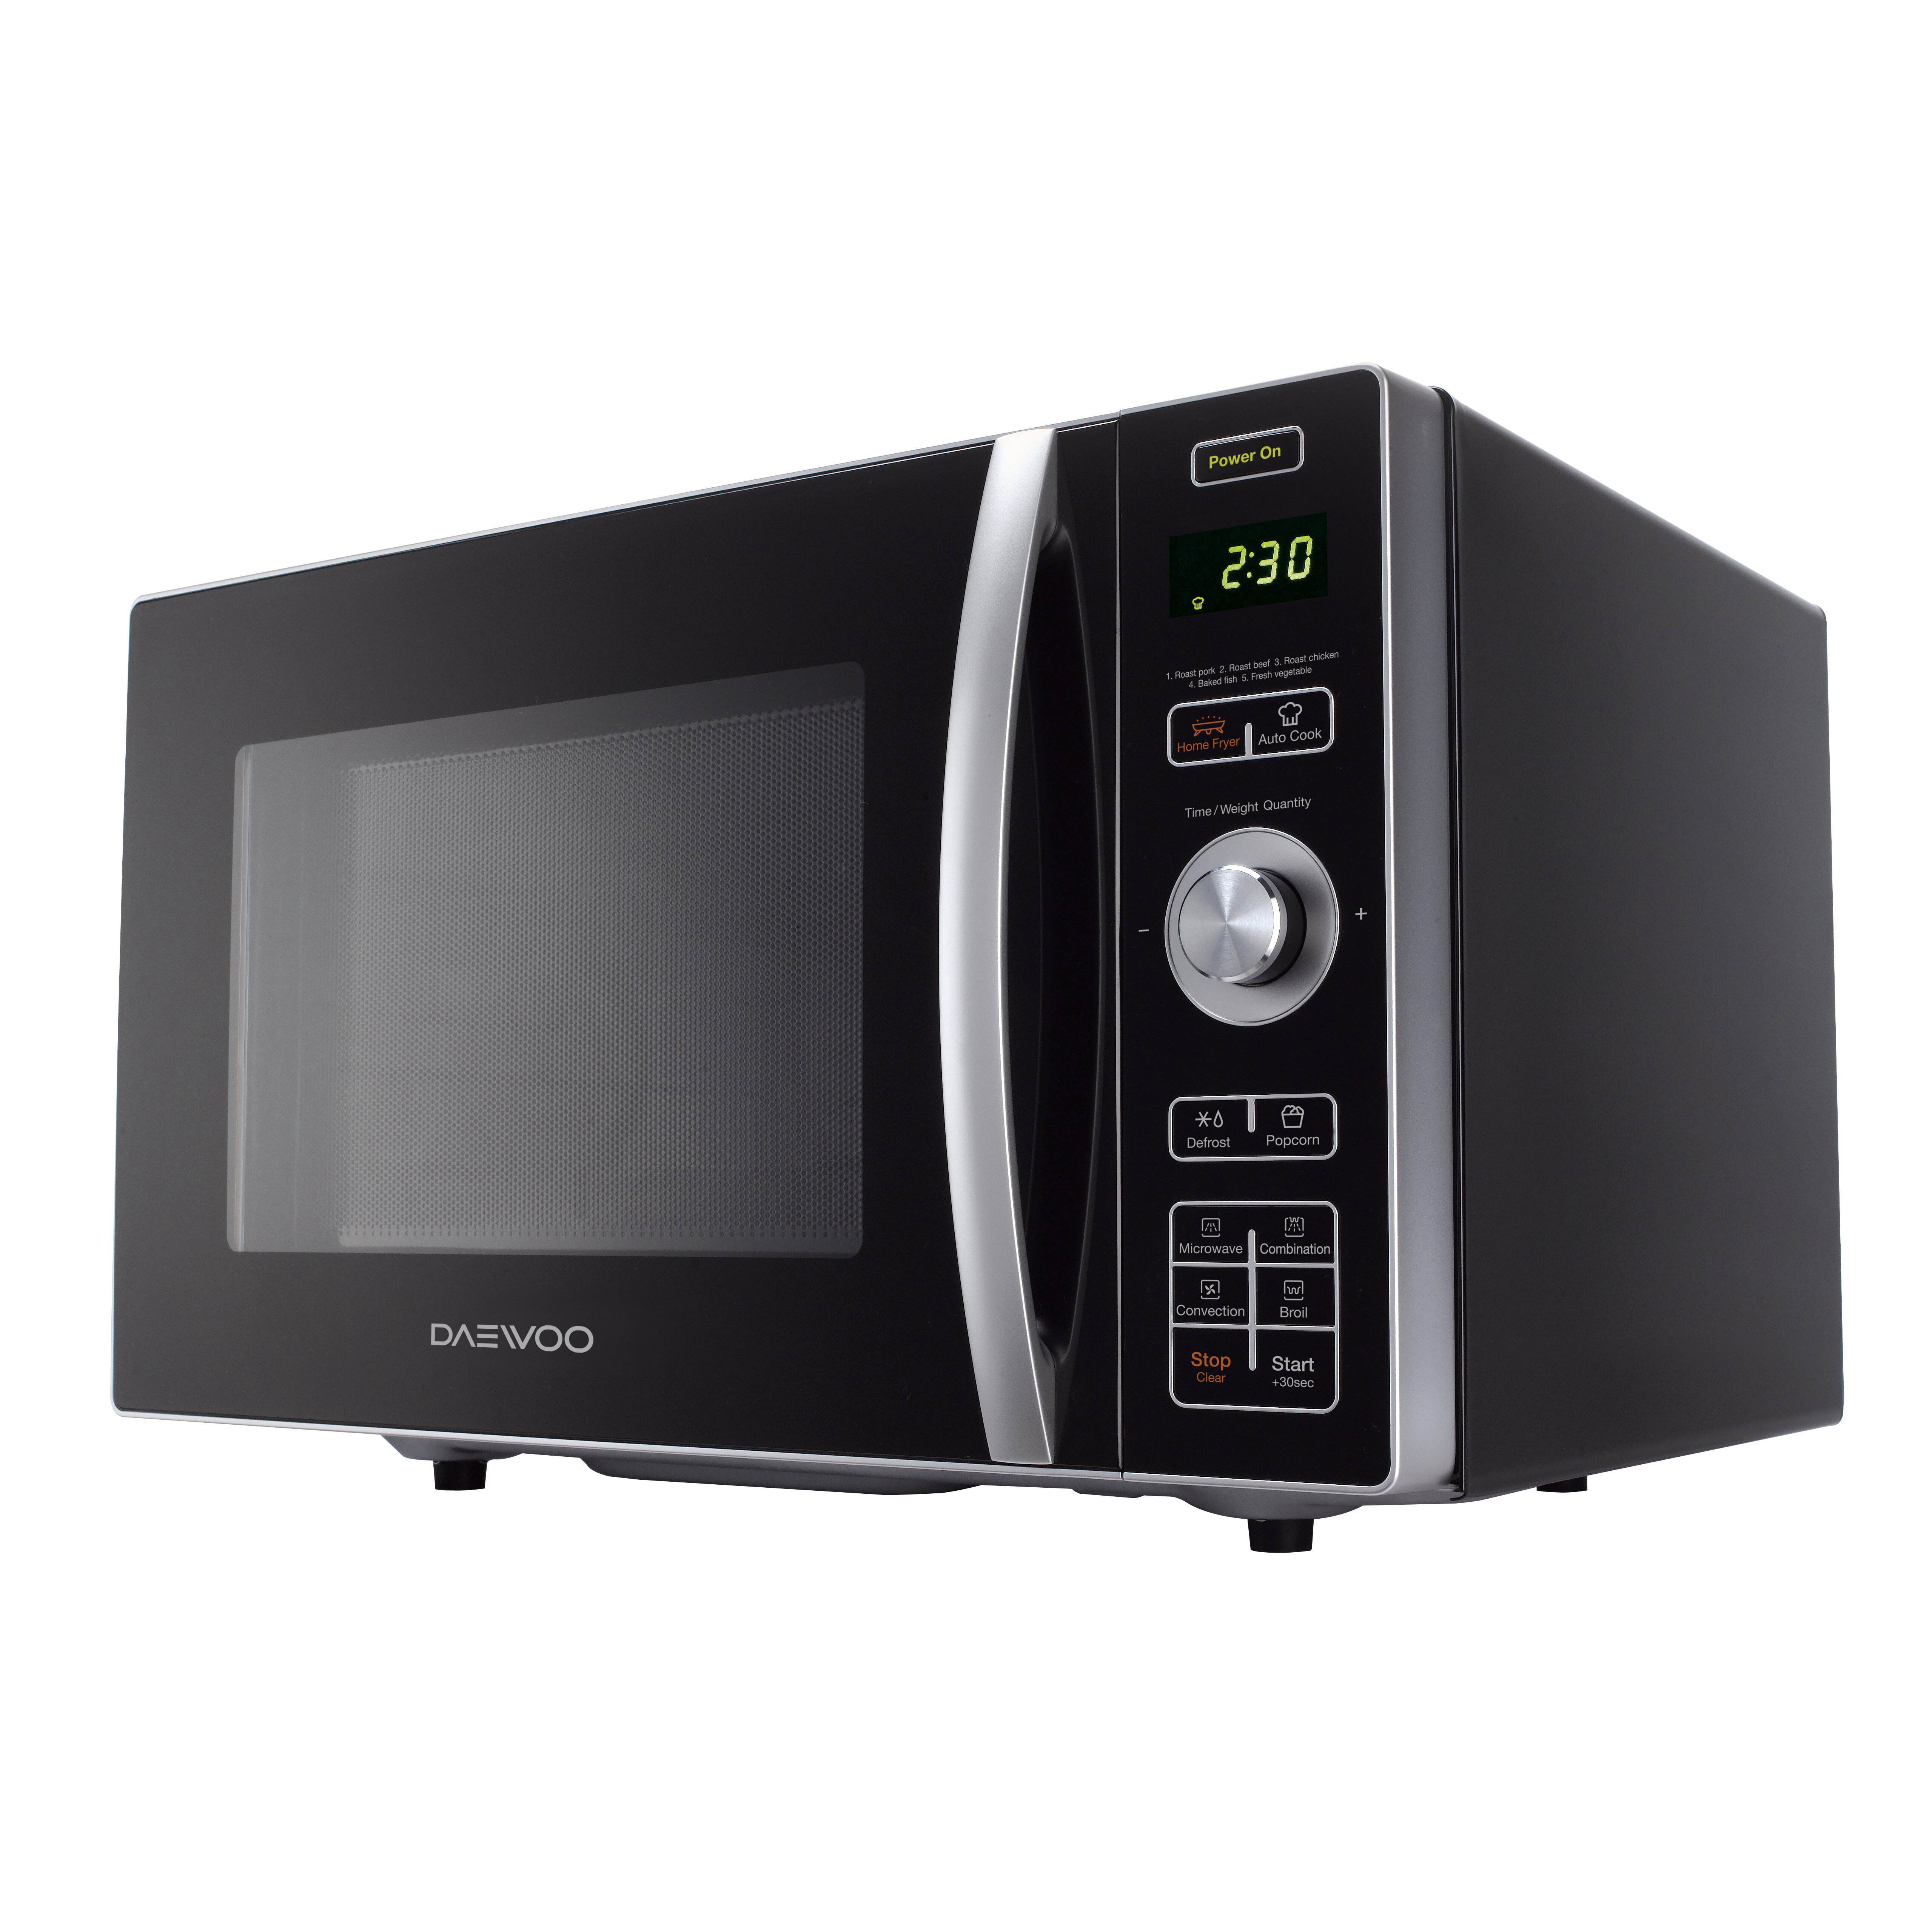 Countertop Microwave With Air Fryer Capability Reviews Wayfair